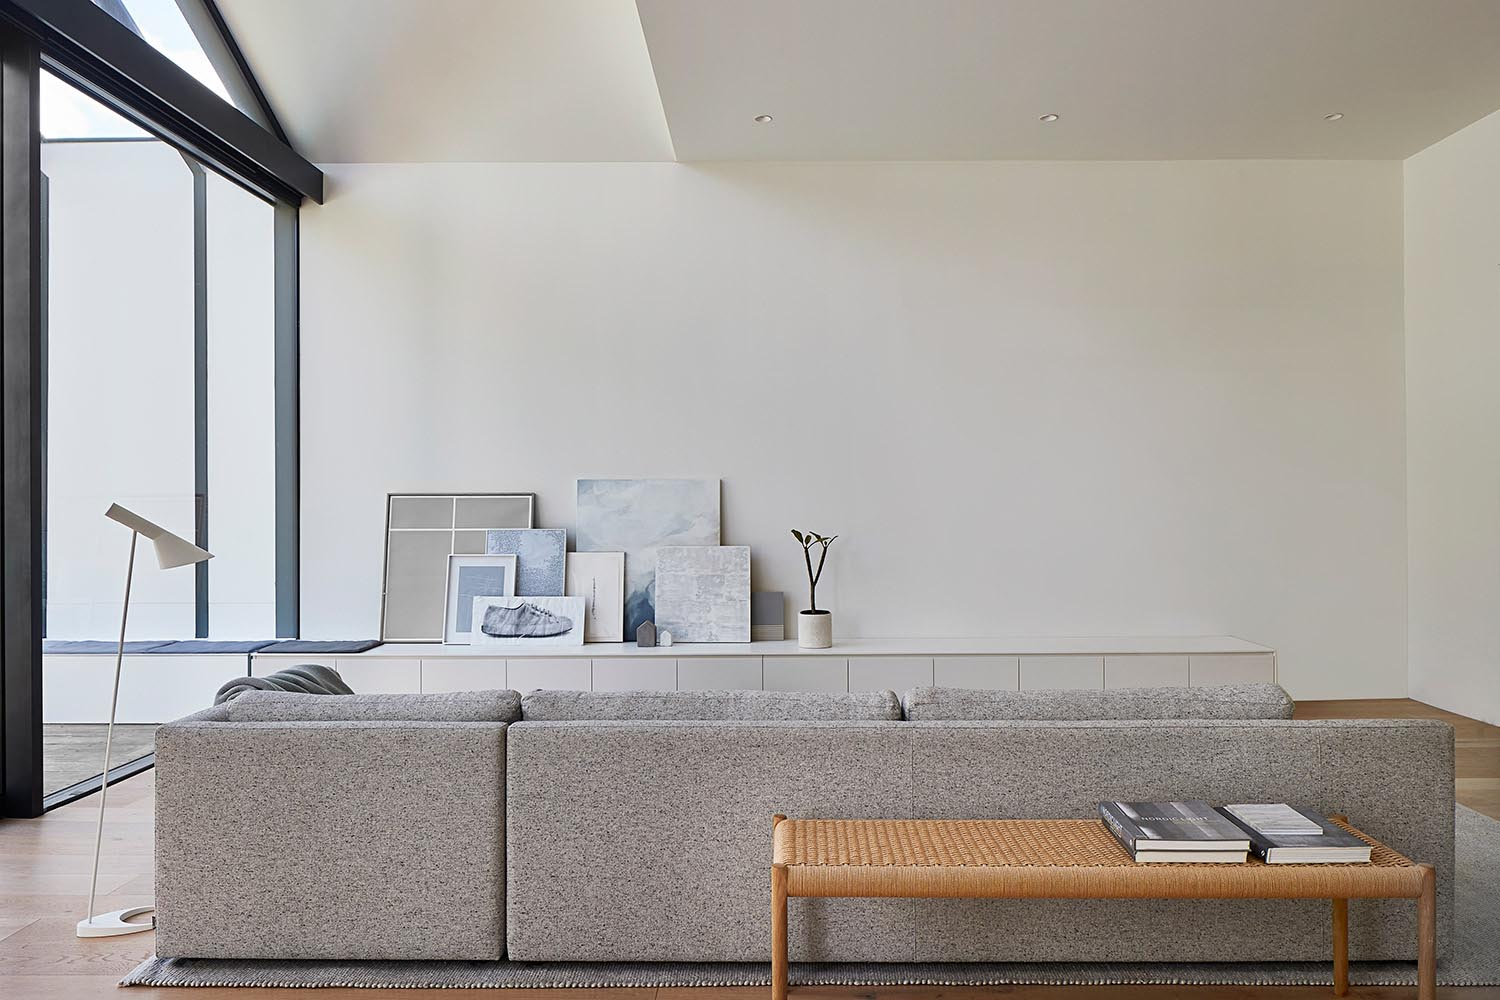 A modern living room with a neutral color palette and a low cabinet that becomes a bench outside.